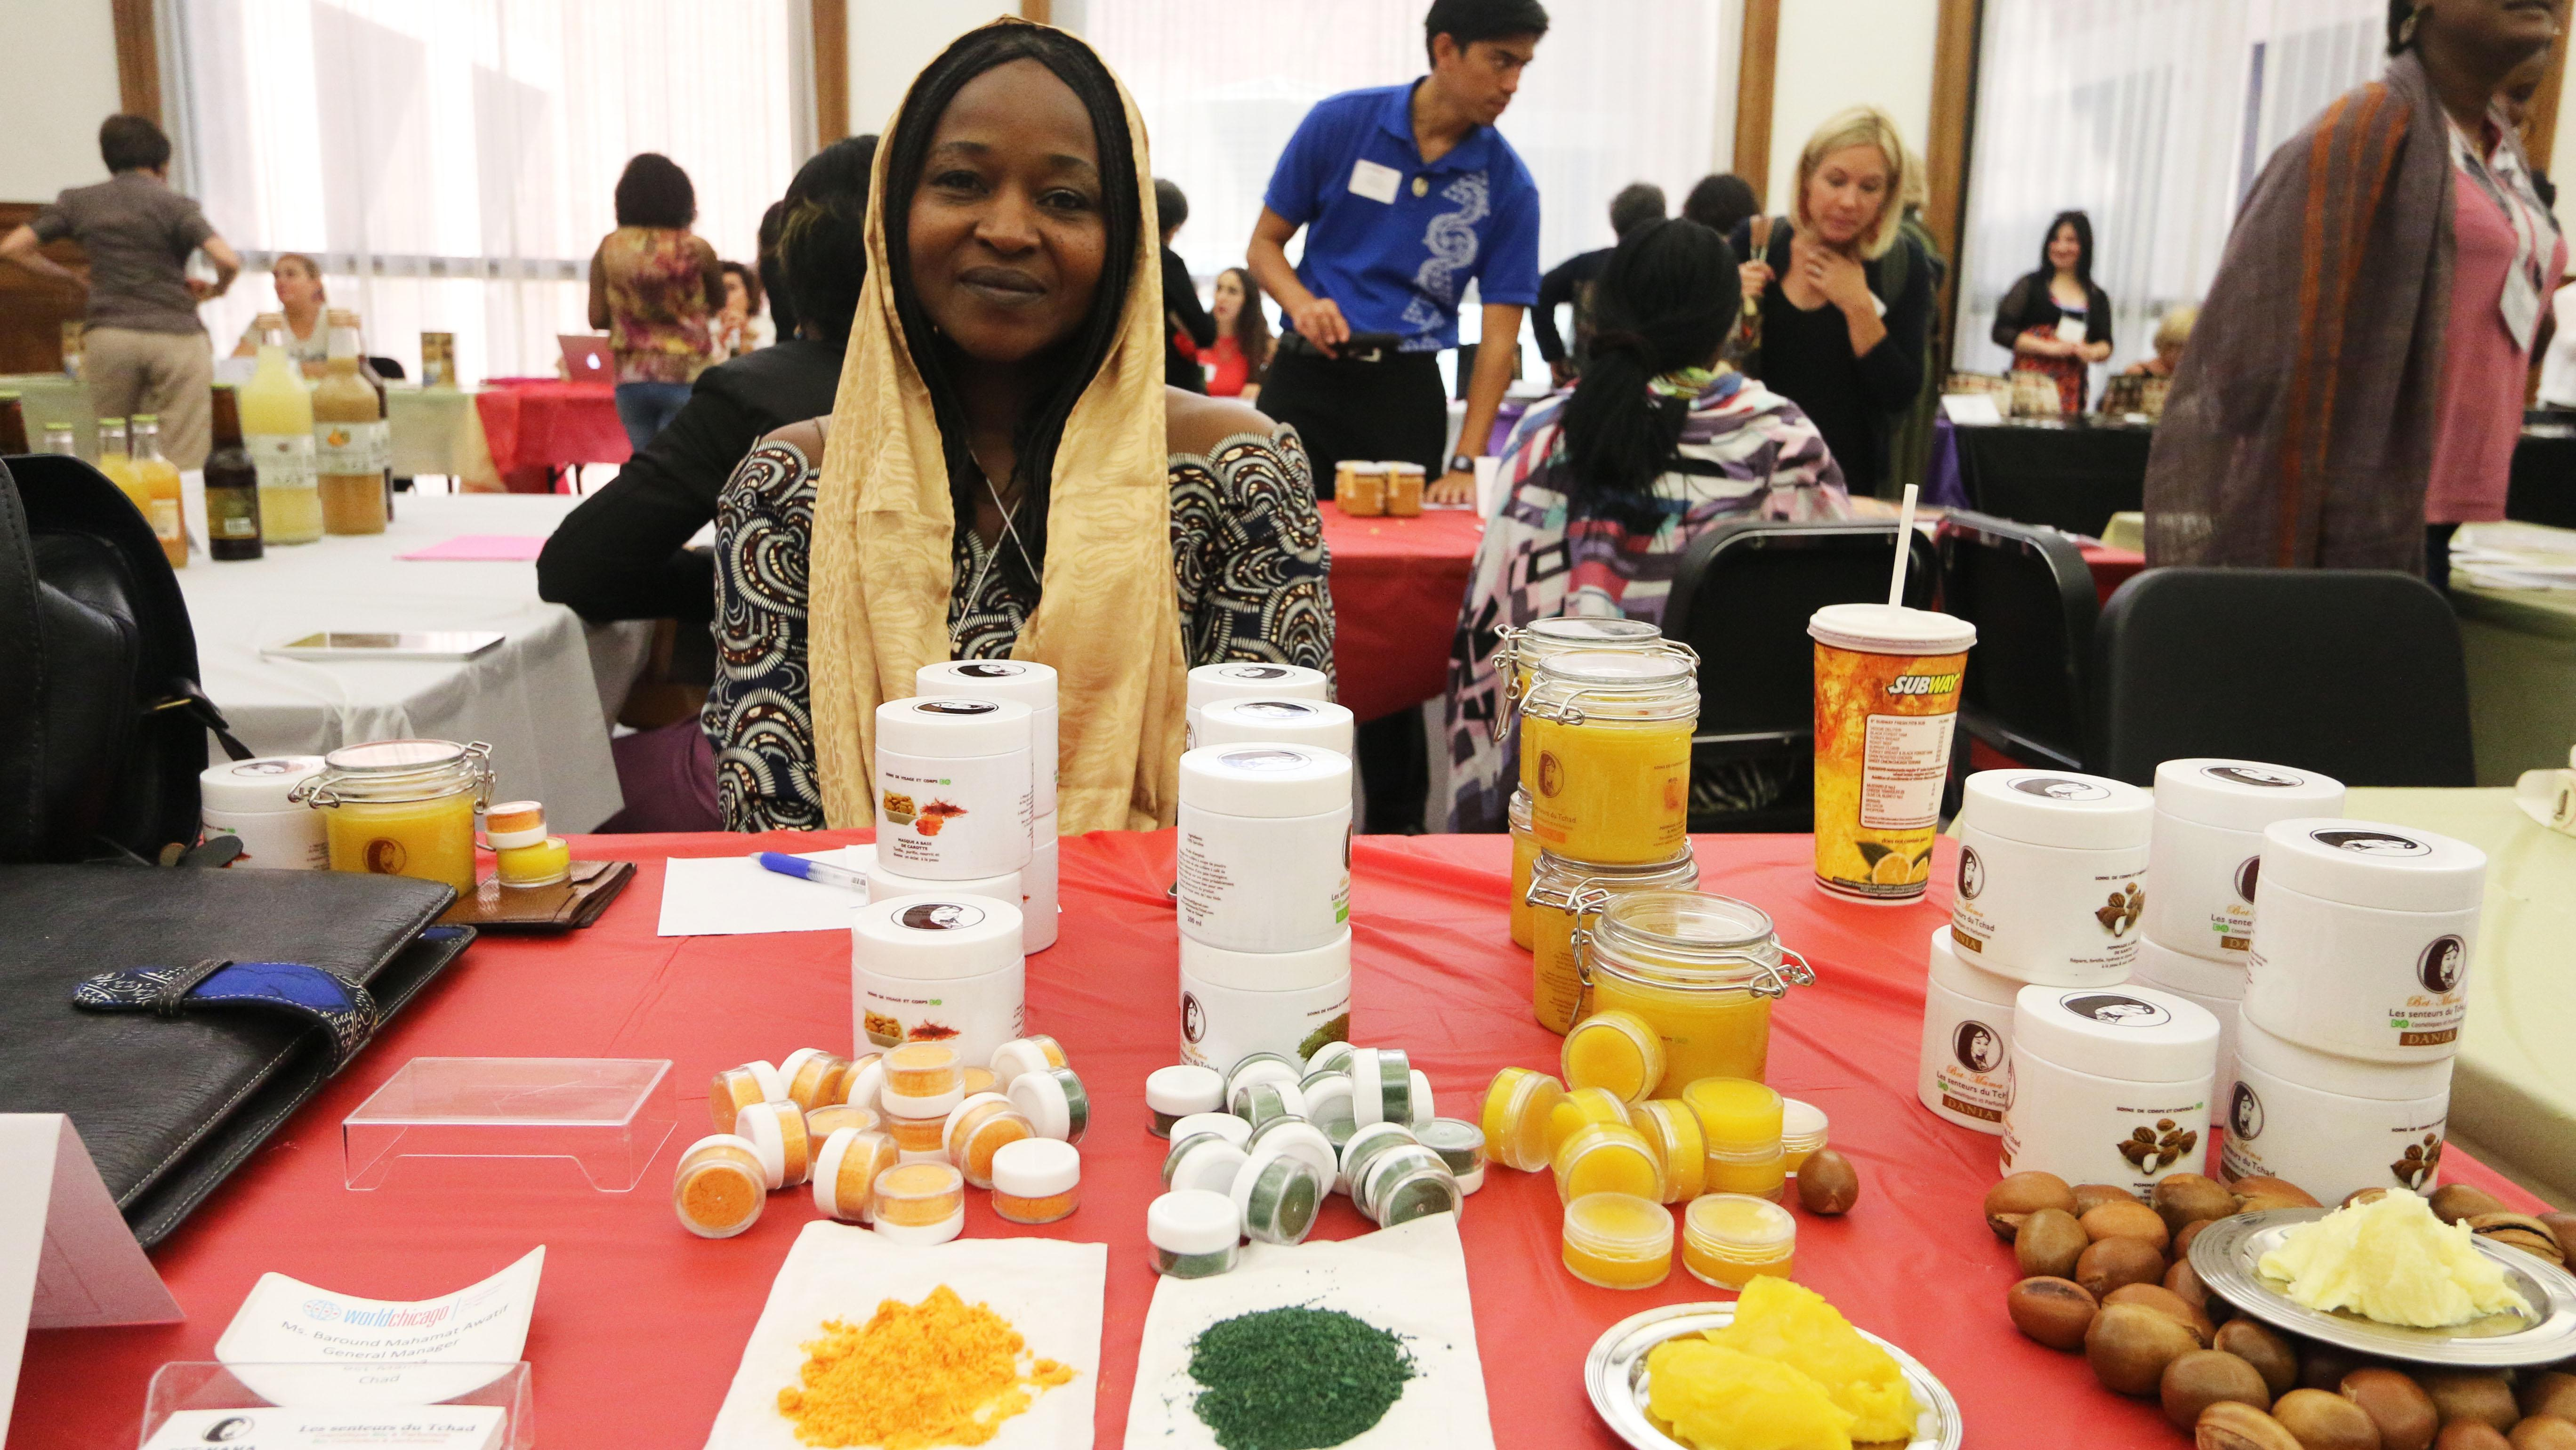 Baround Mahamat Awatif of Bet-Mama in Chad displays handmade cosmetics in 2015. (Courtesy of Peggy Parfenoff)